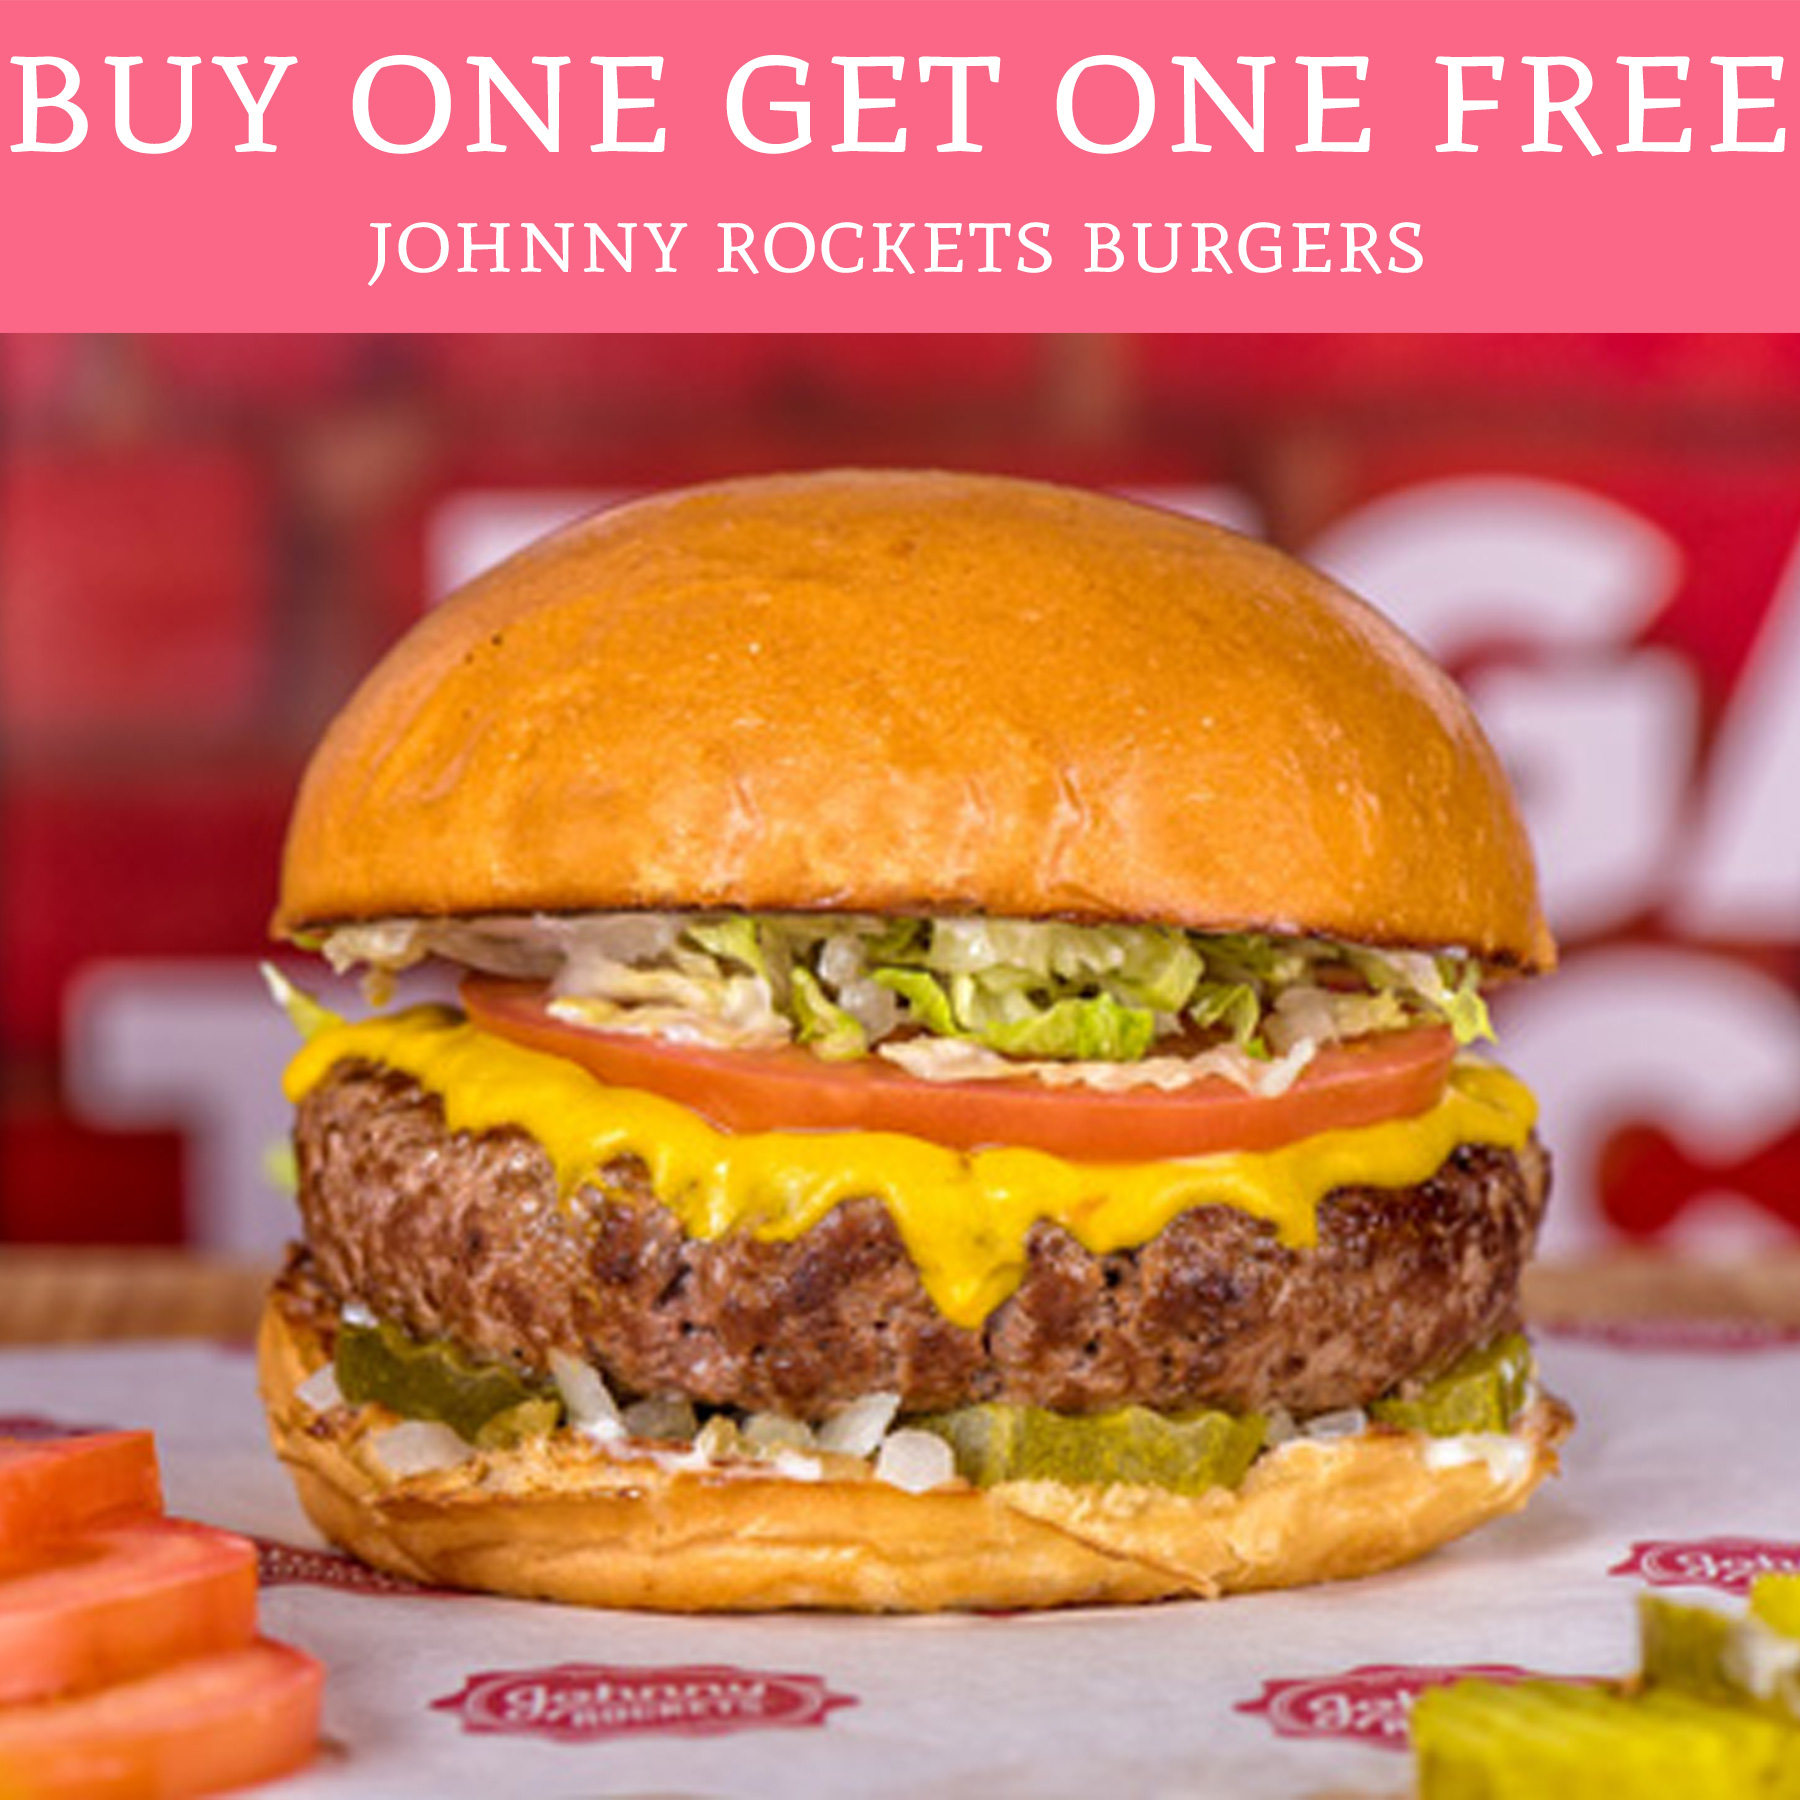 Hot Buy One Get One Free Johnny Rockets Burgers Deal